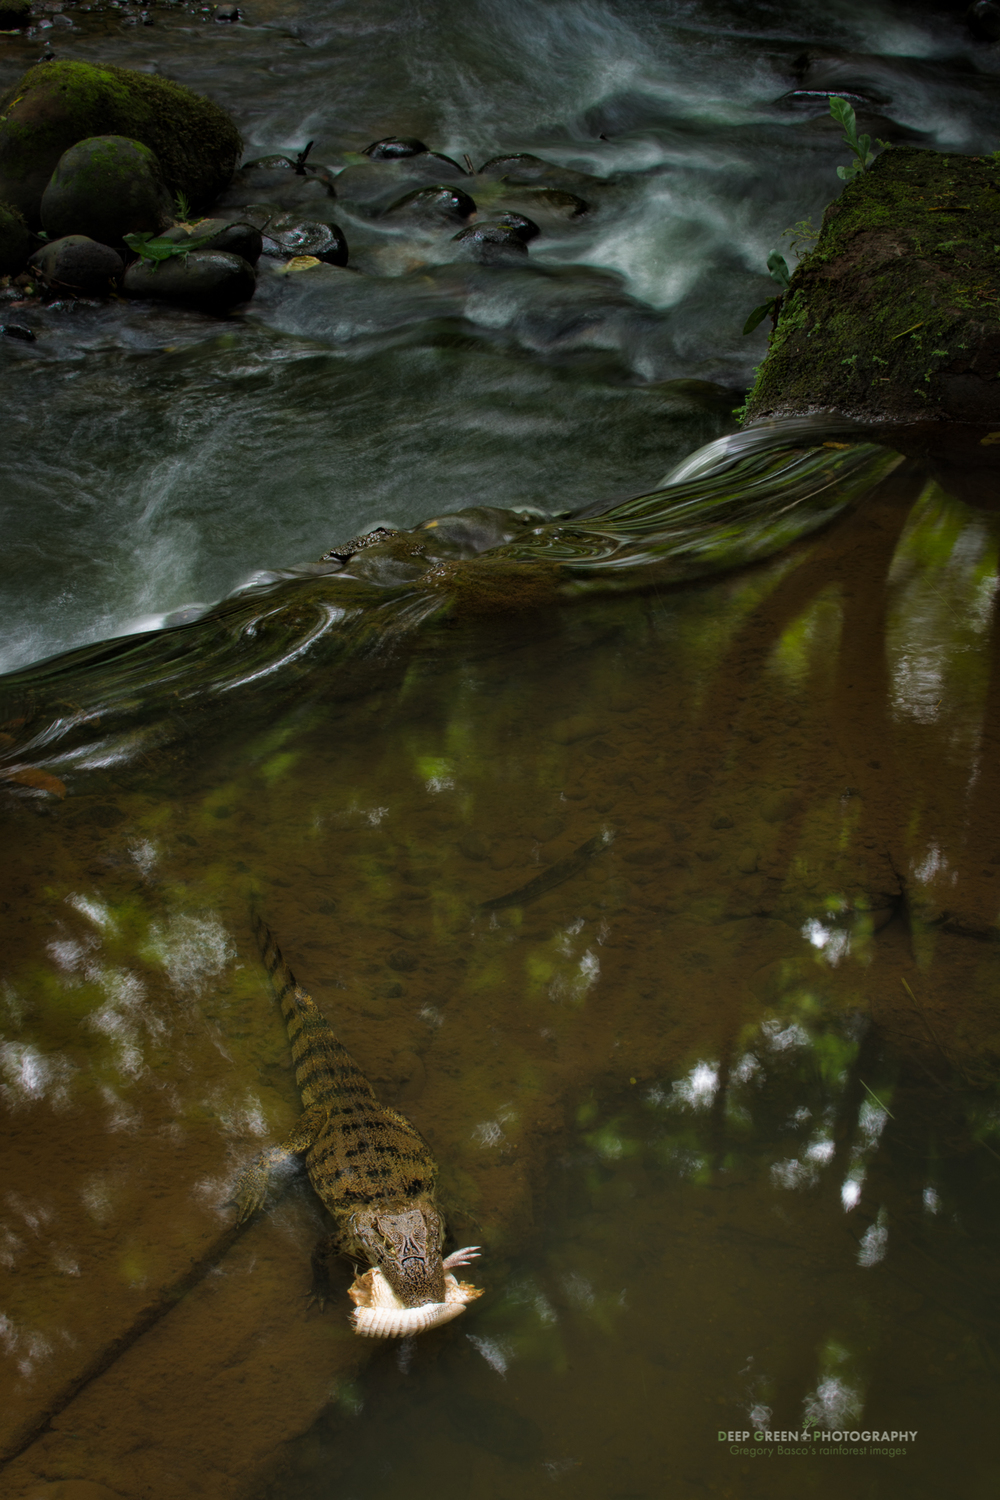 spectacled caiman eating an armadillo in a rainforest stream